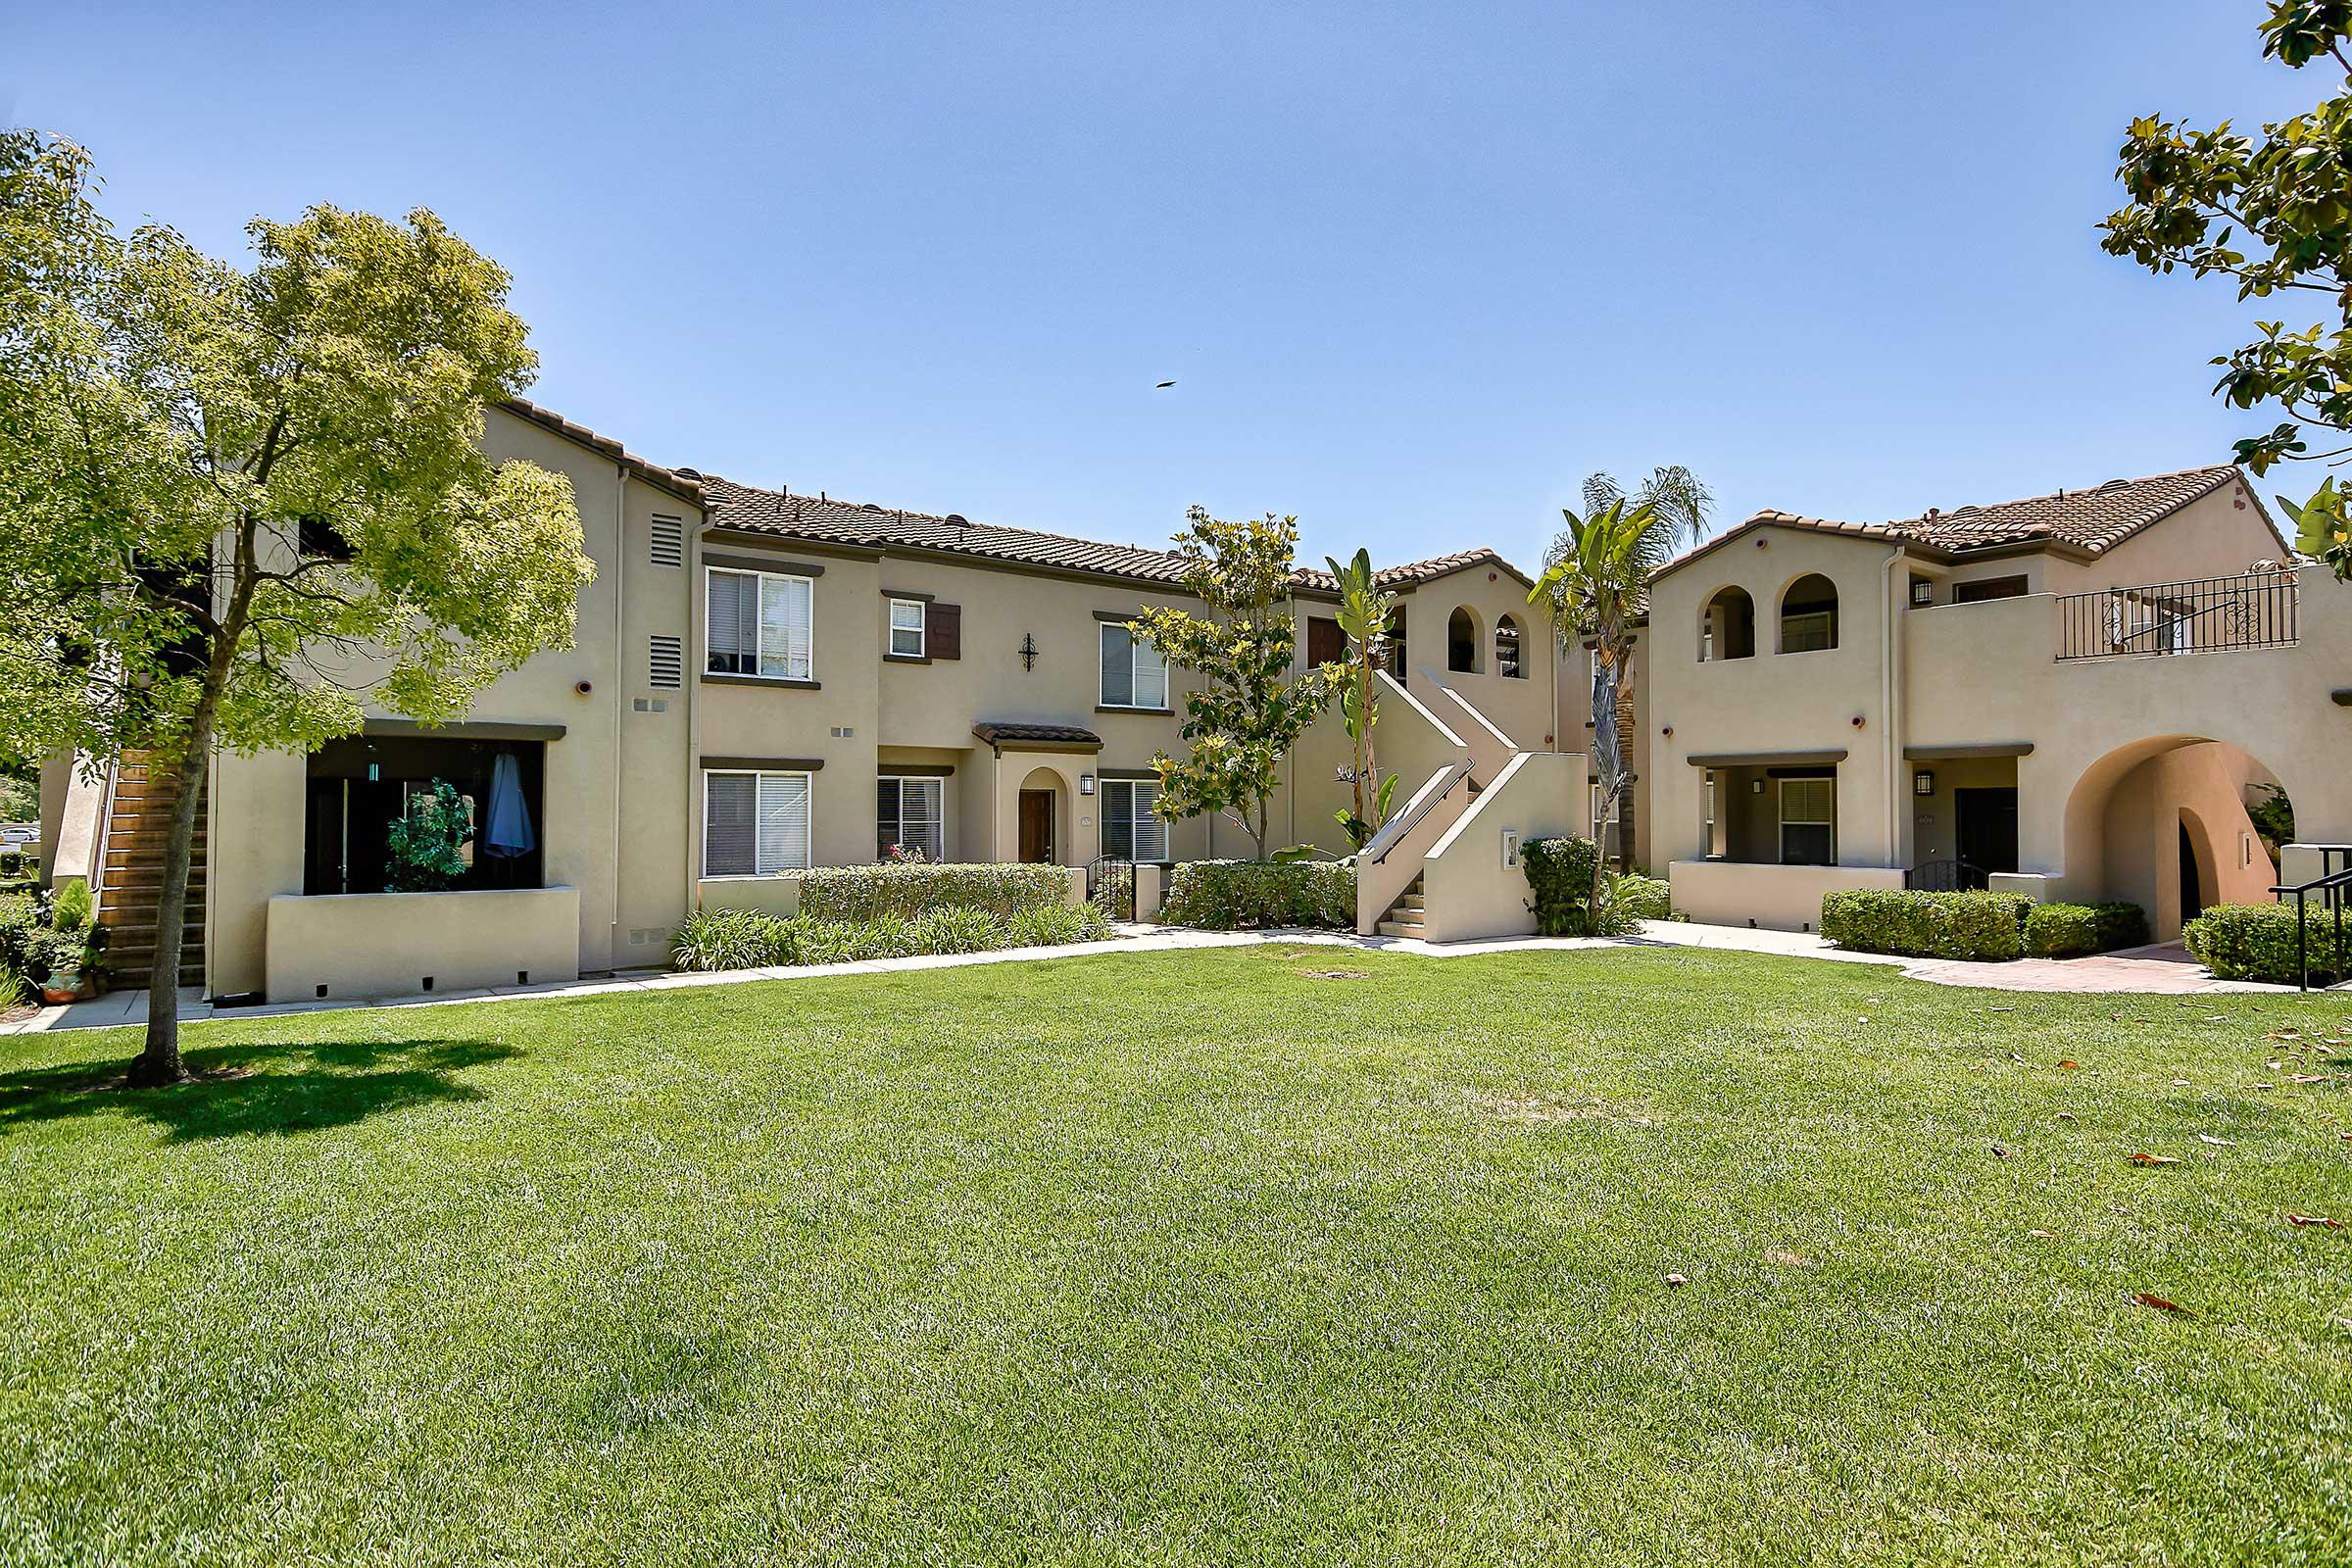 Laurel Canyon Apartment Homes community building with a green grass